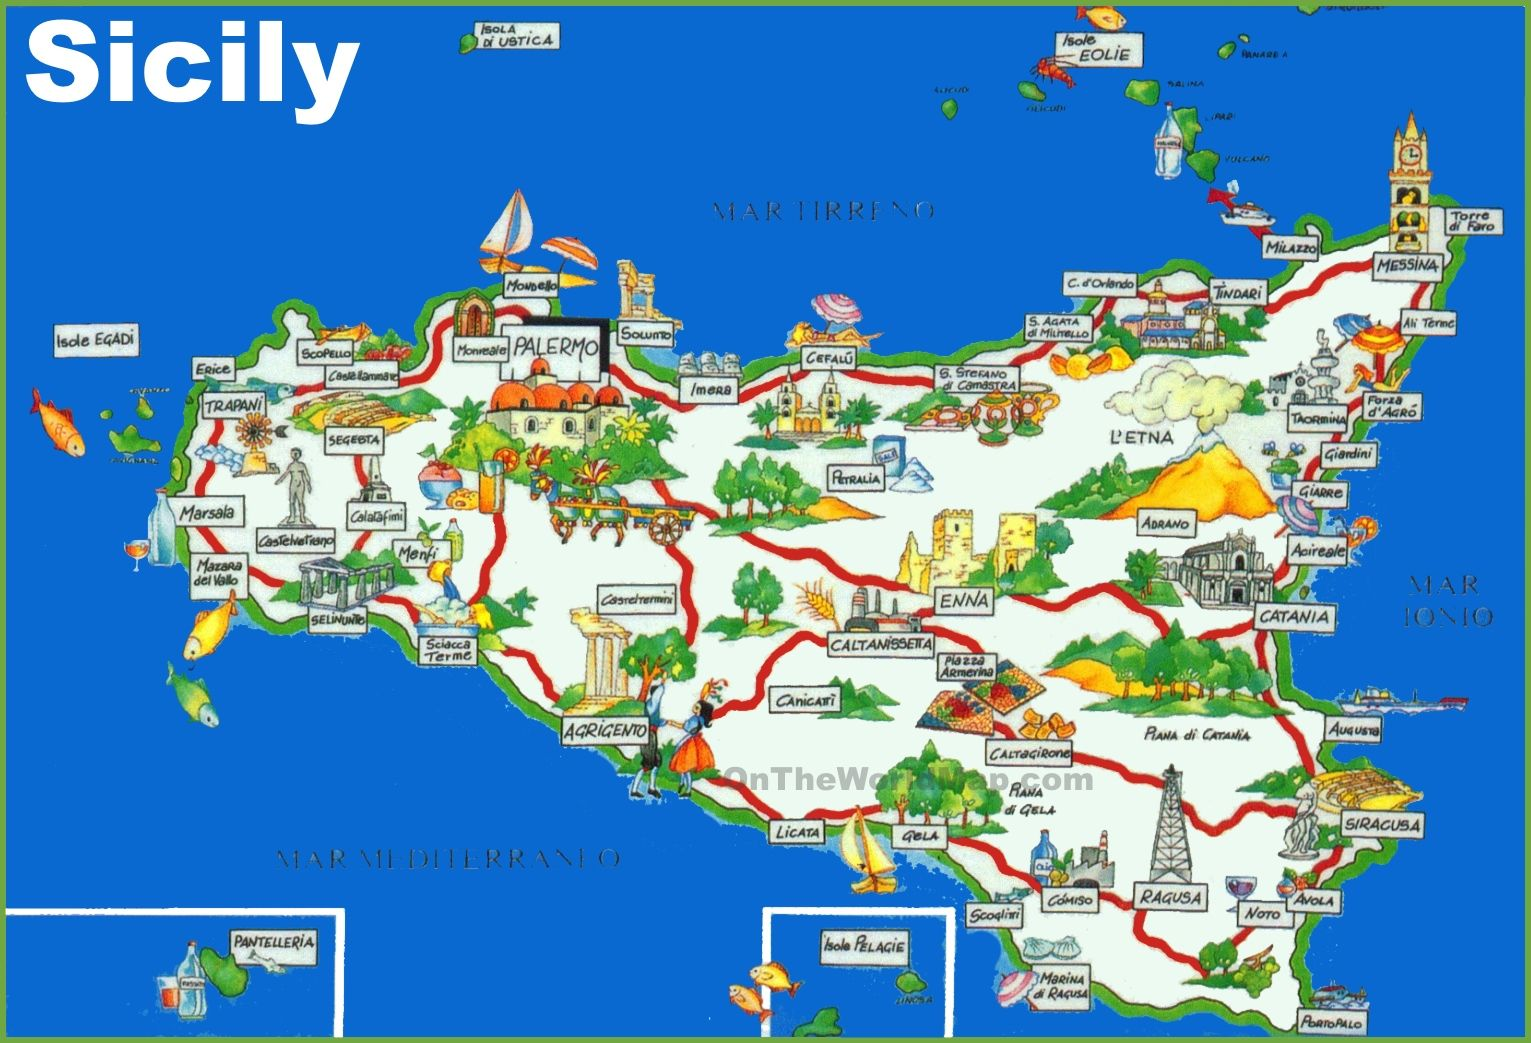 Sicily tourist map | Travel in 2019 | Sicily, Tourist map, Italy